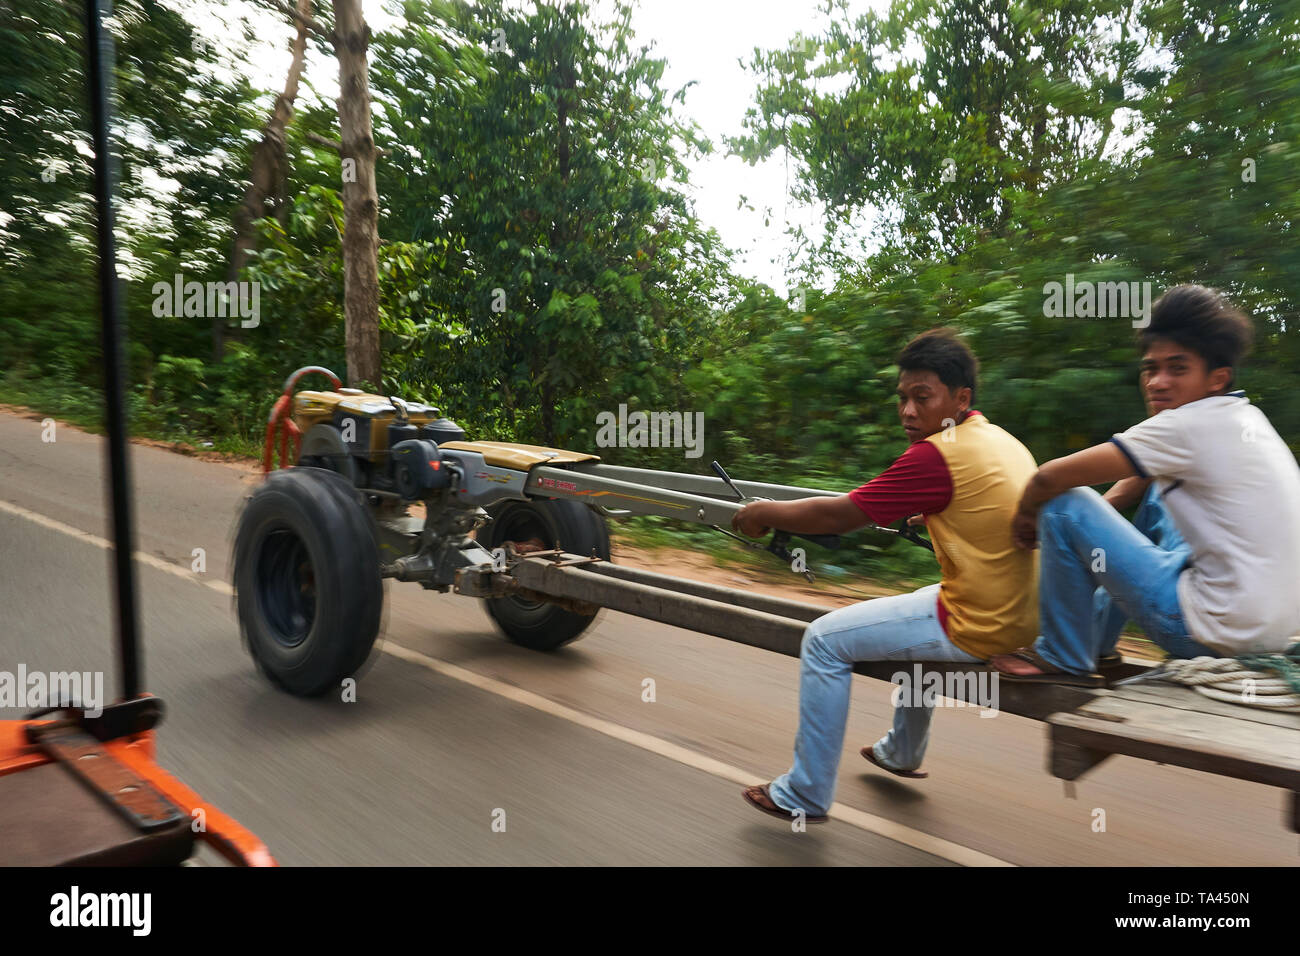 Two Cambodian young men or teenagers drive a creative, homemade vehicle or tractor trailer using an engine and farm equipment parts. - Stock Image